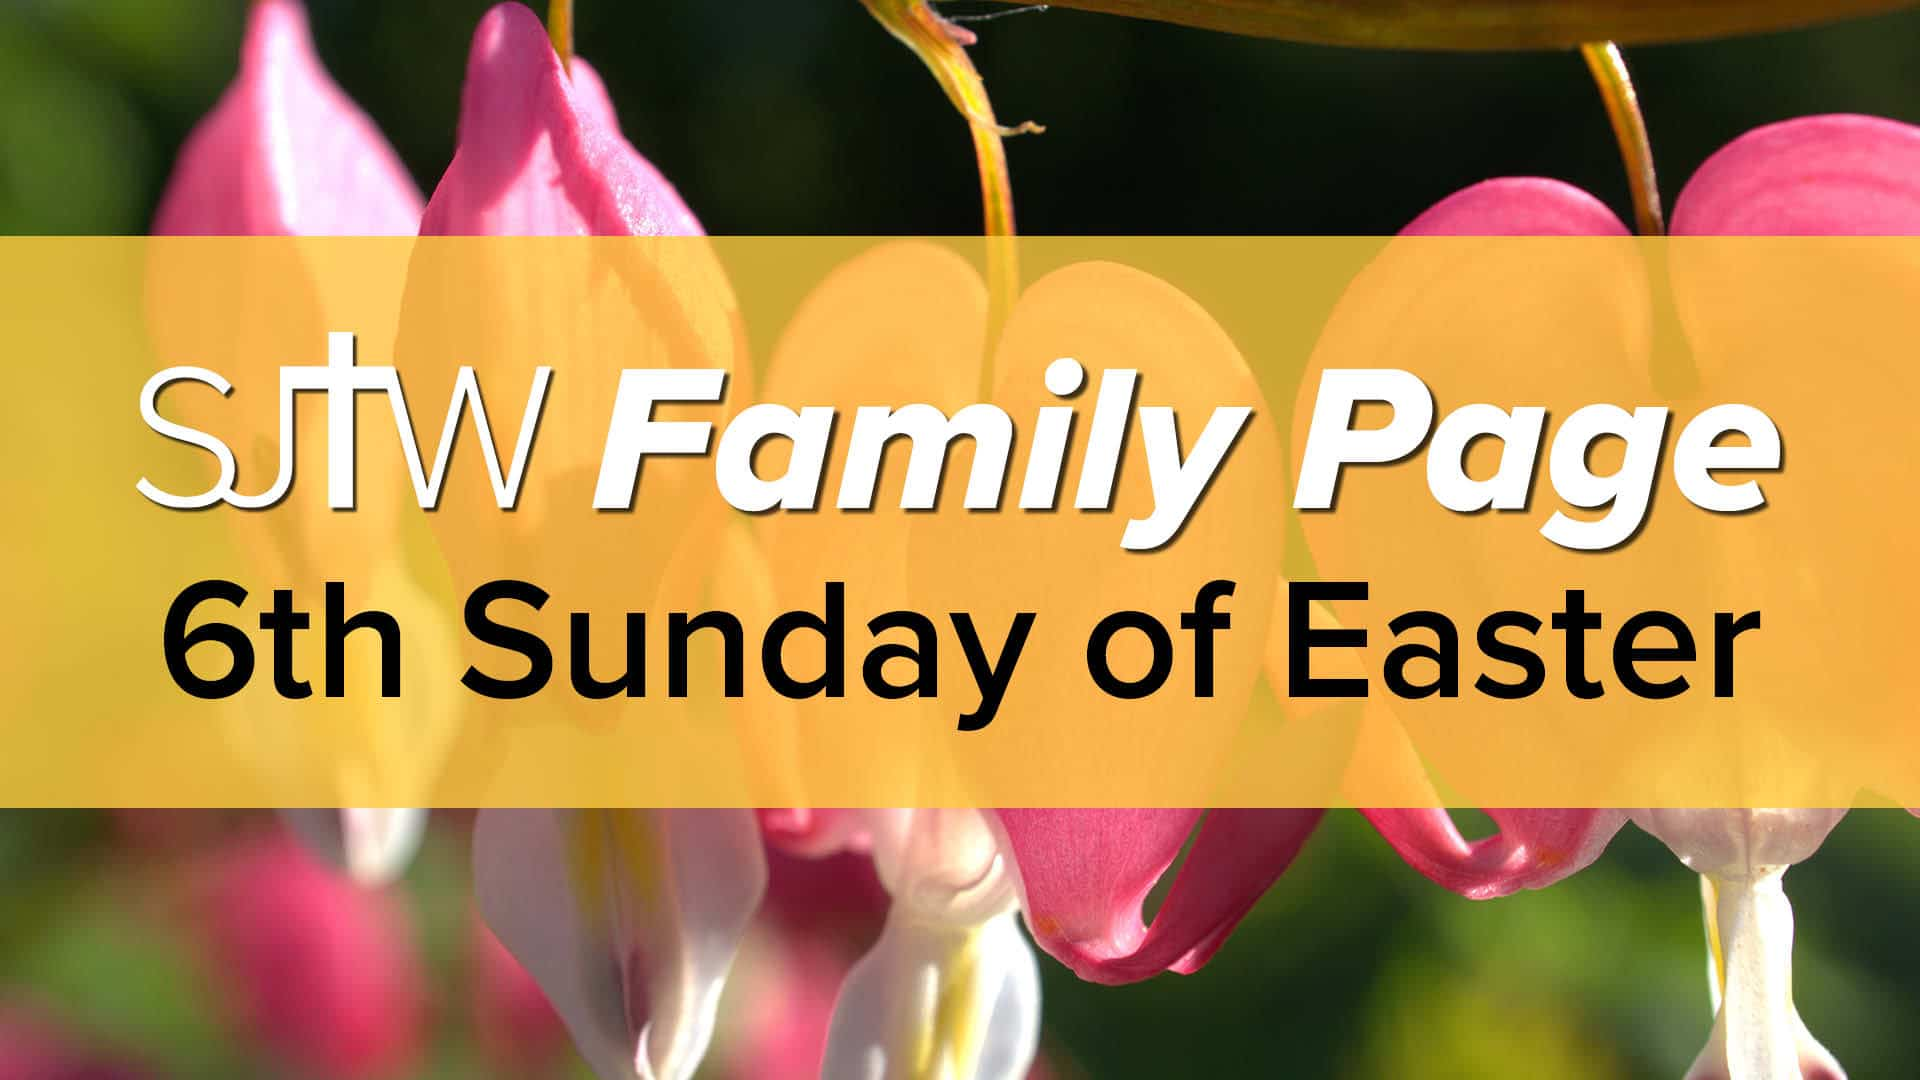 Family Page - 6th Sunday of Easter